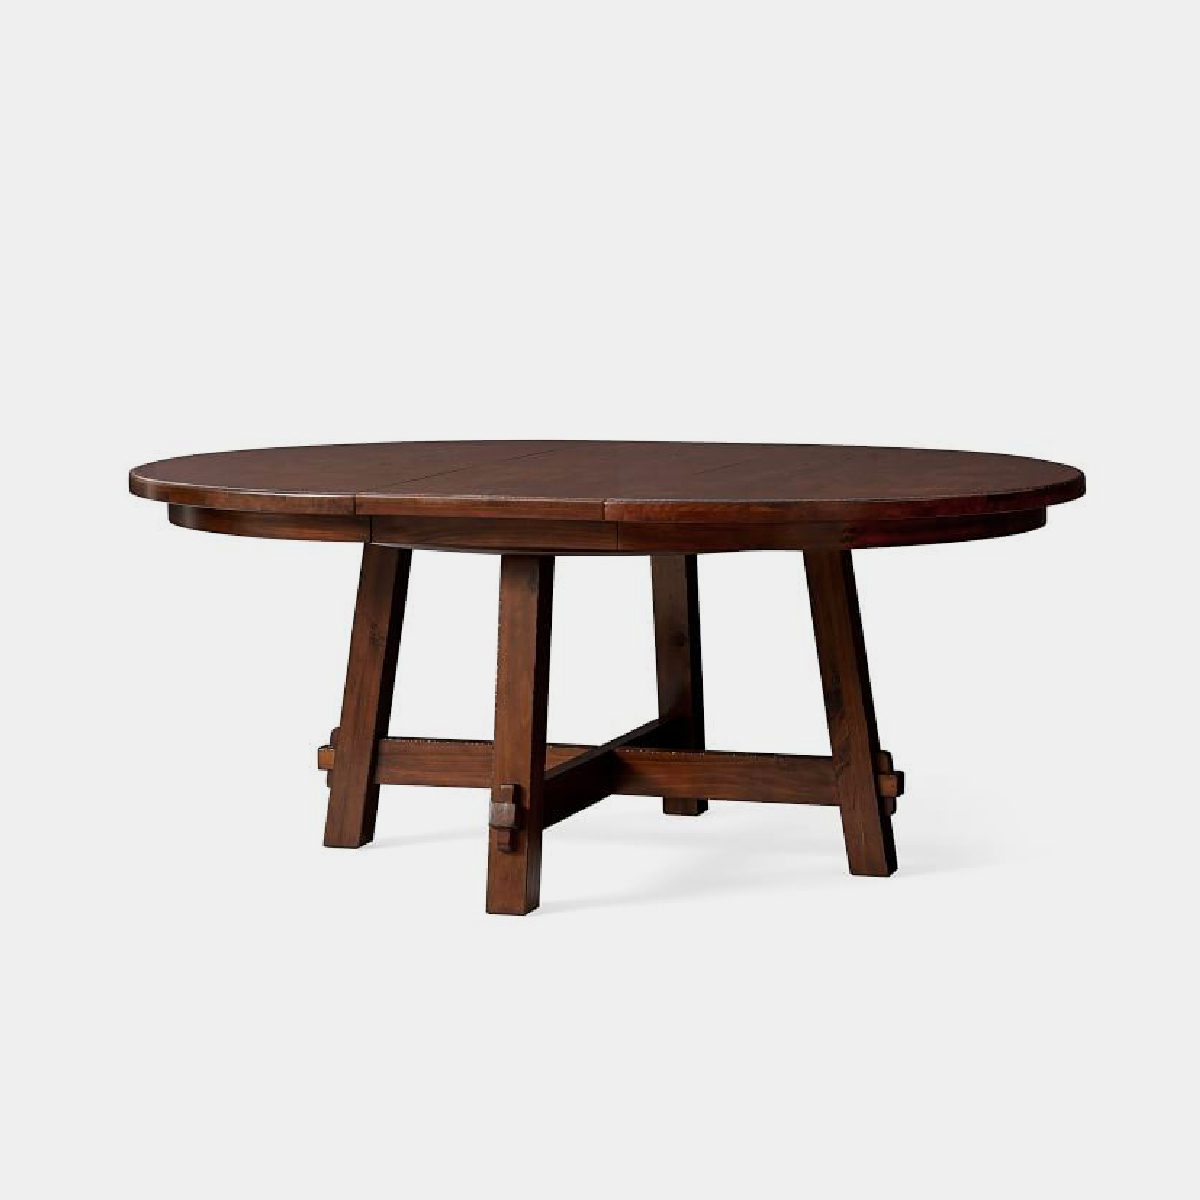 Best And Newest Hearst Oak Wood Dining Tables With Regard To Add To Cart: Dining Tables (View 8 of 25)